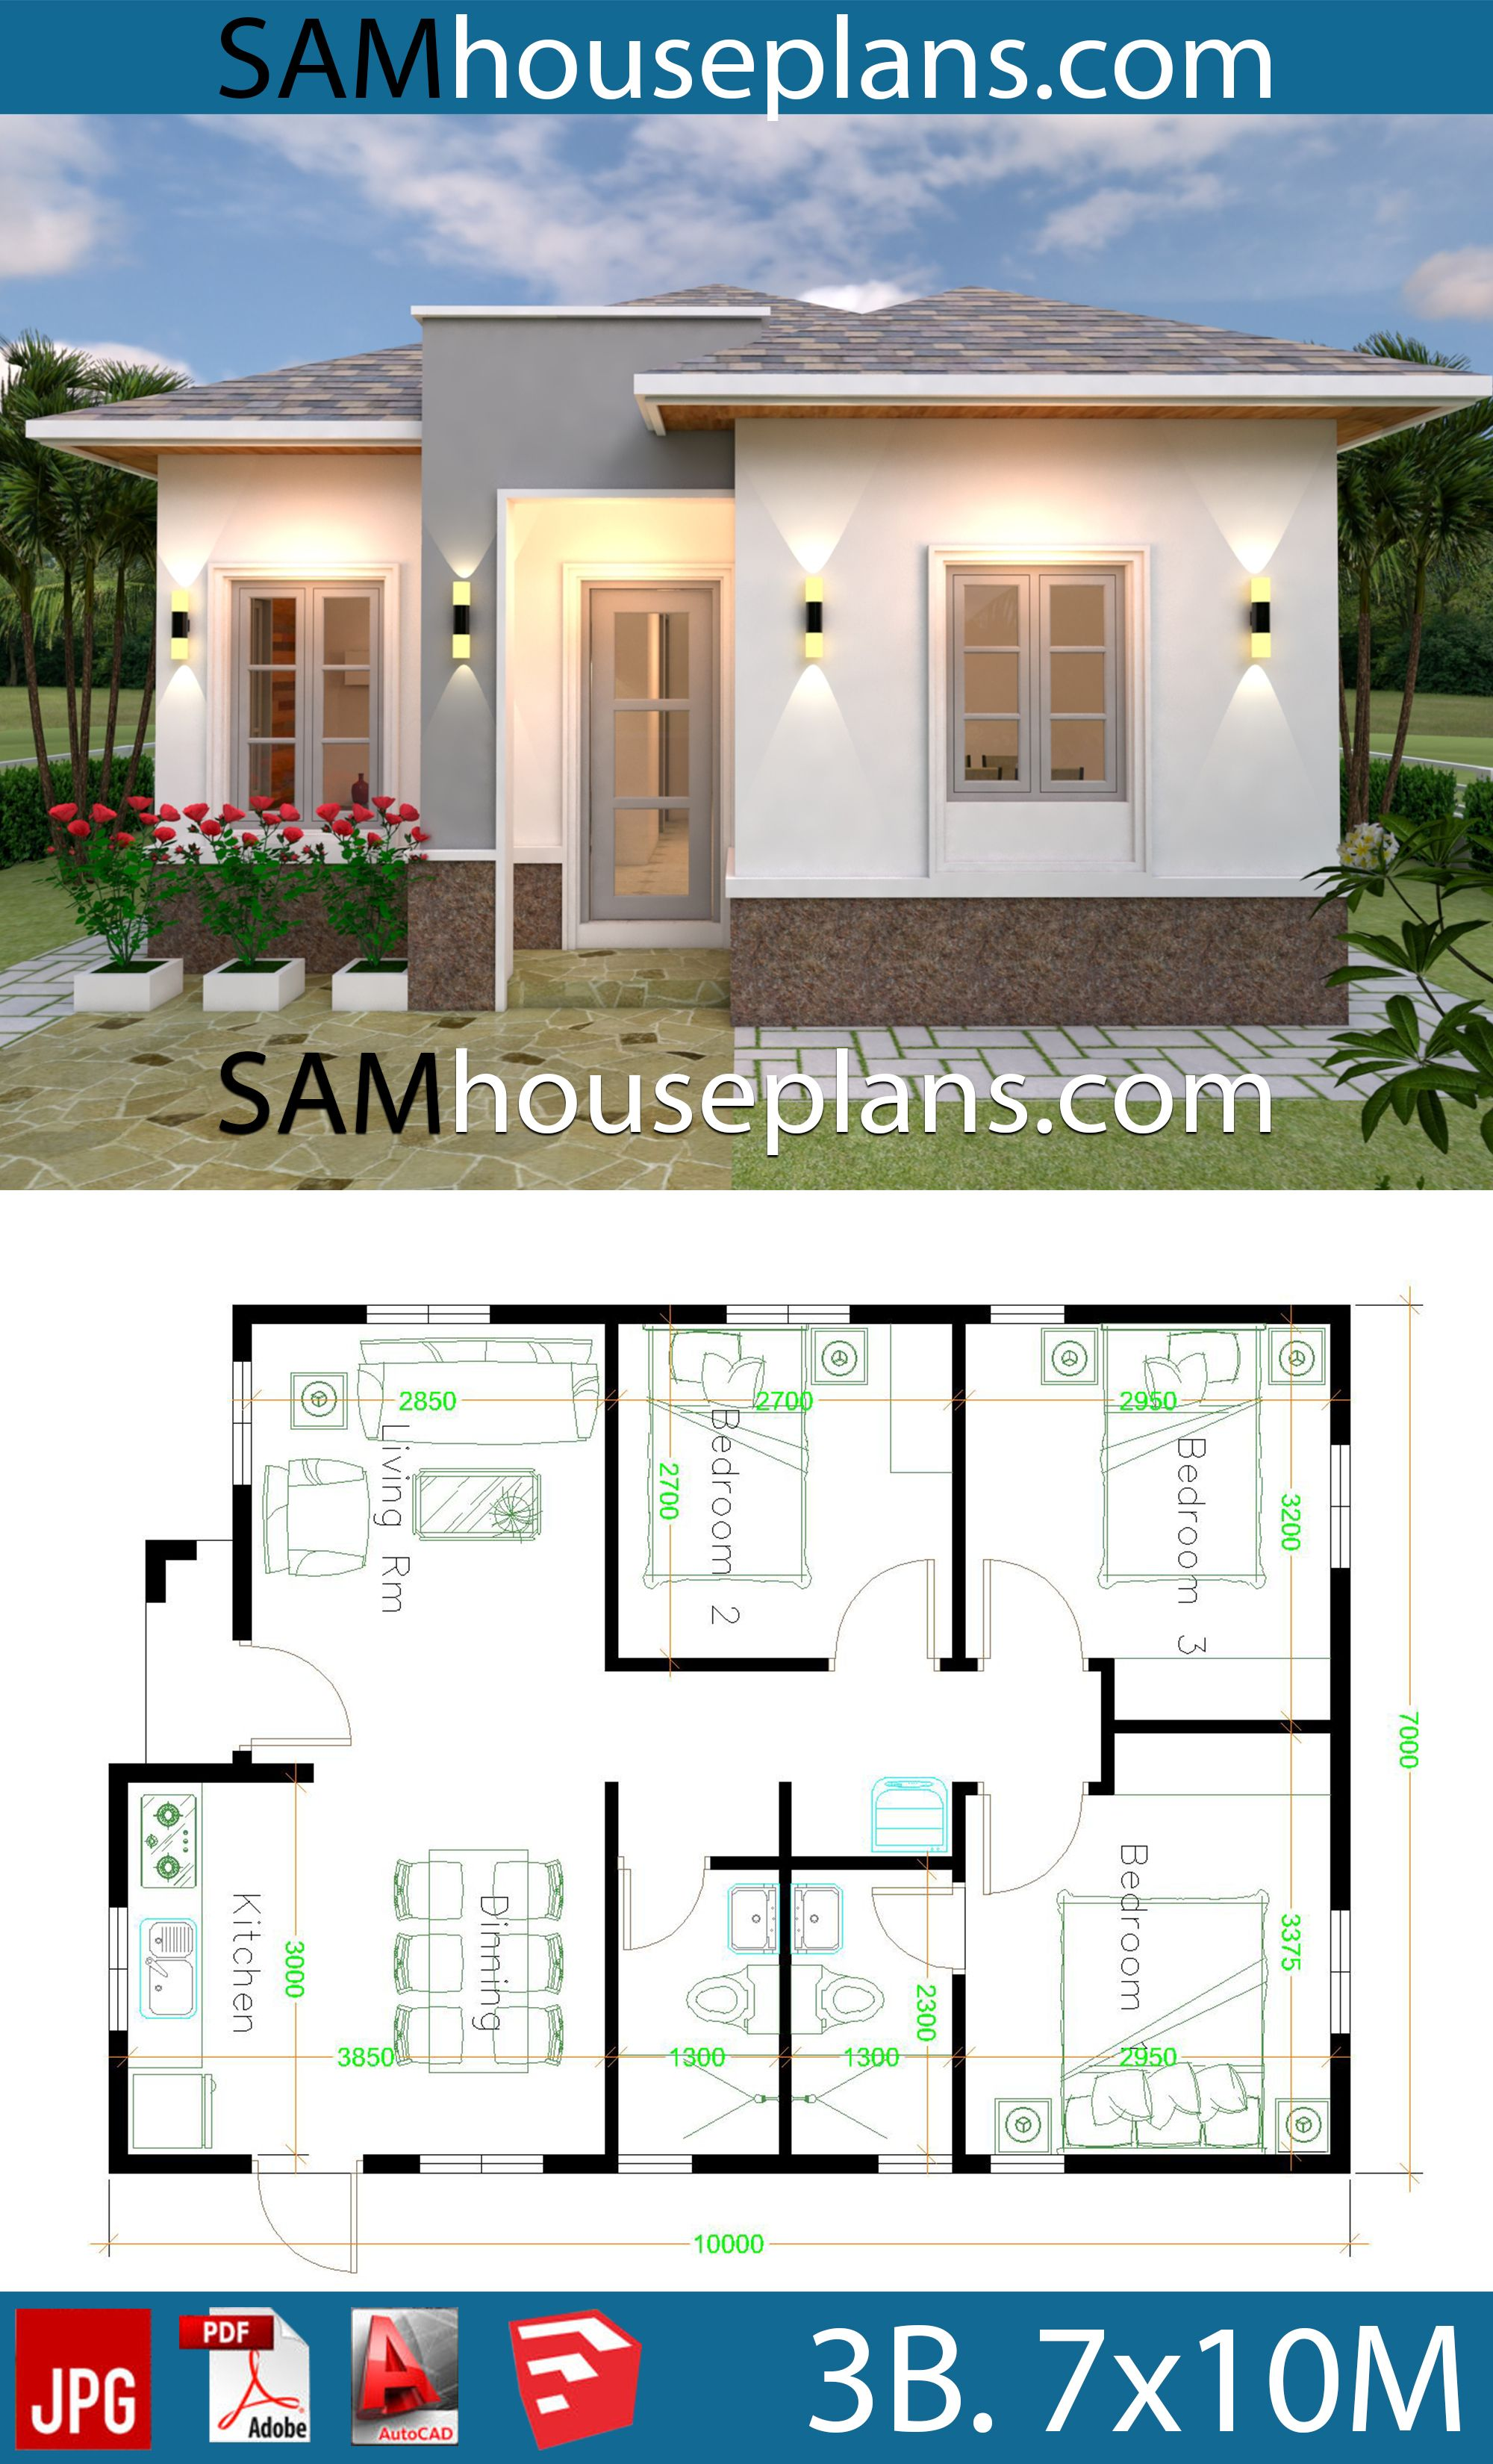 House Plans 7x10 With 3 Bedrooms Sam House Plans House Plan Gallery My House Plans House Construction Plan